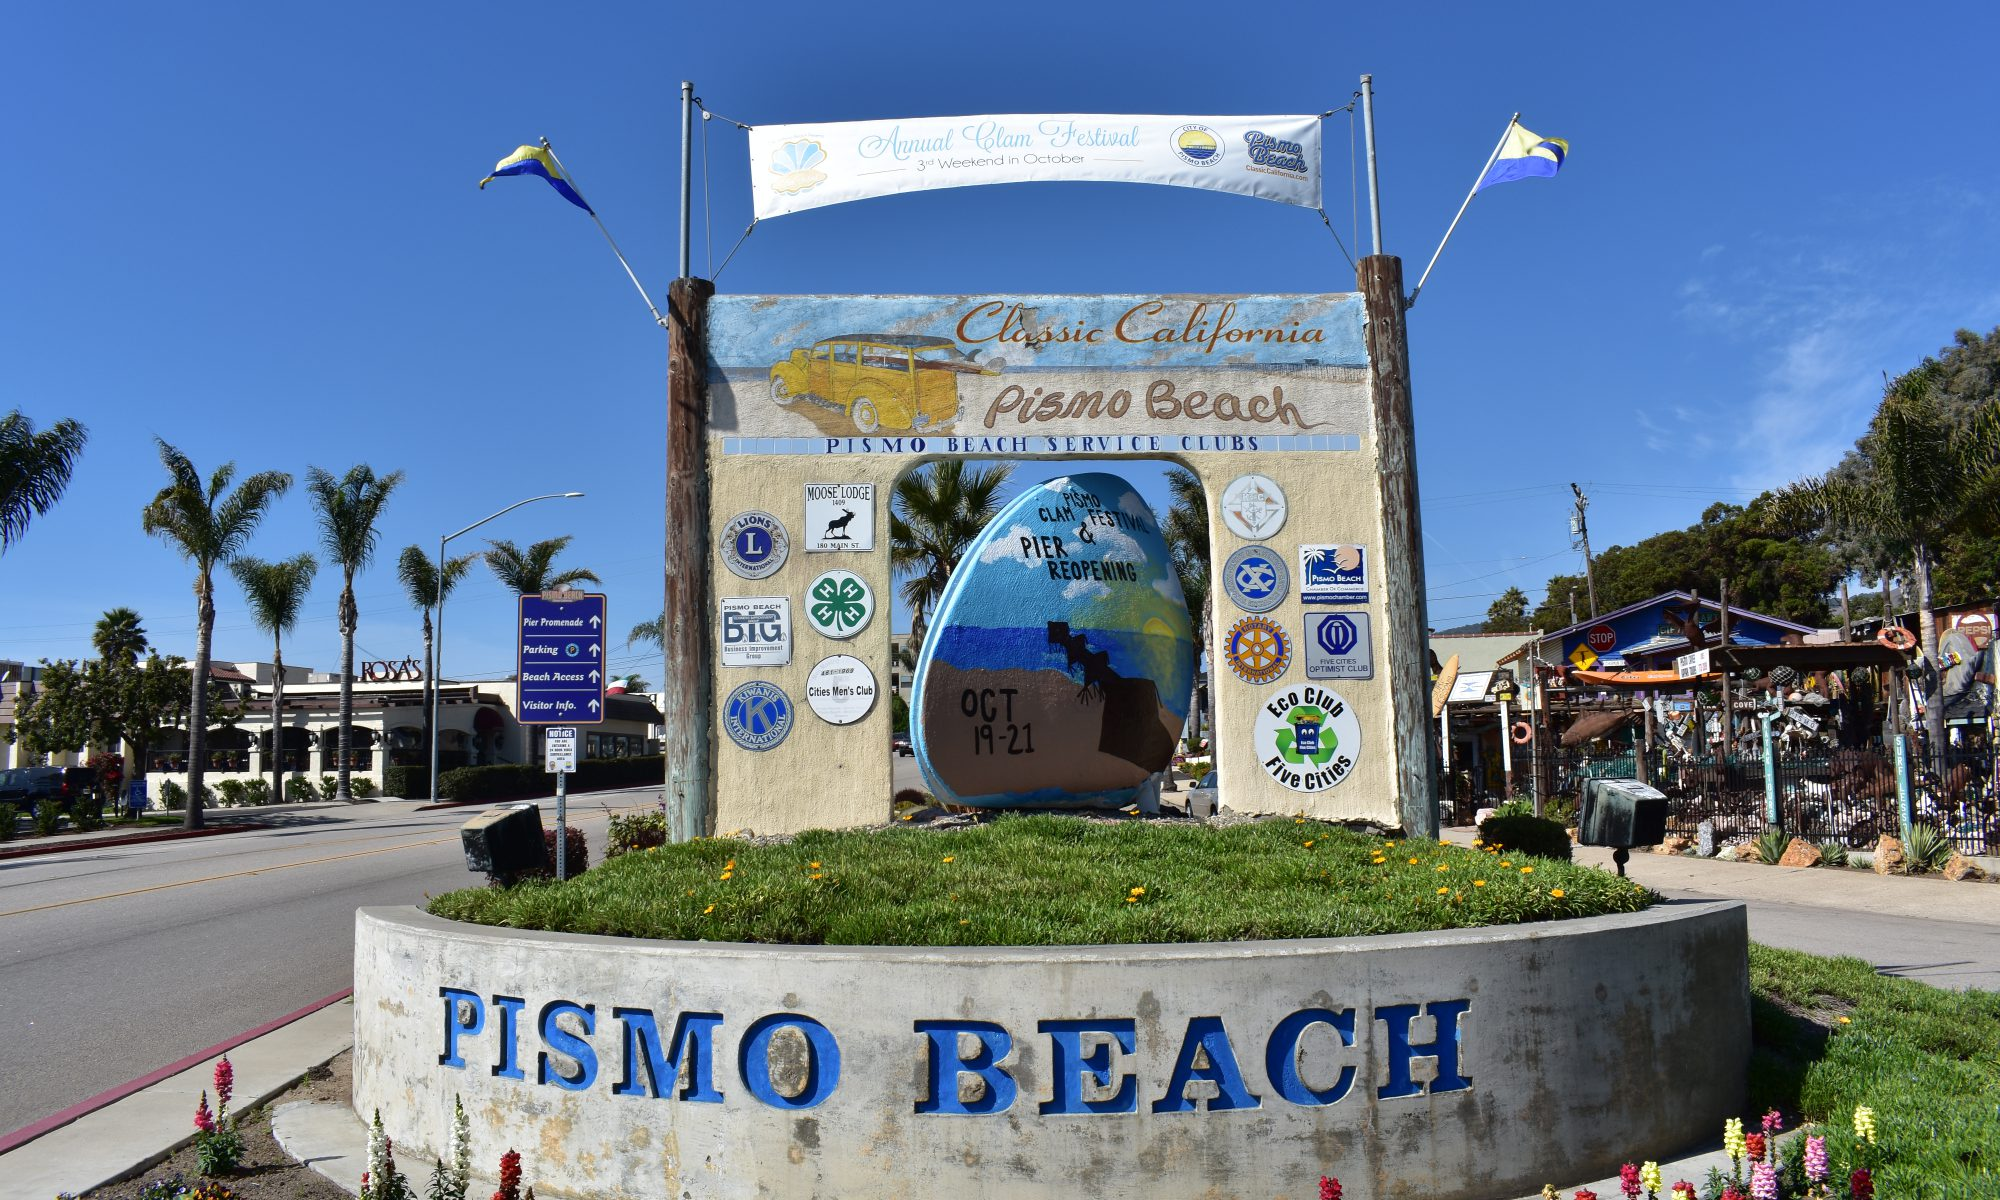 Pismo Beach Welcome Sign 2018 Pismo Beach Clam Festival